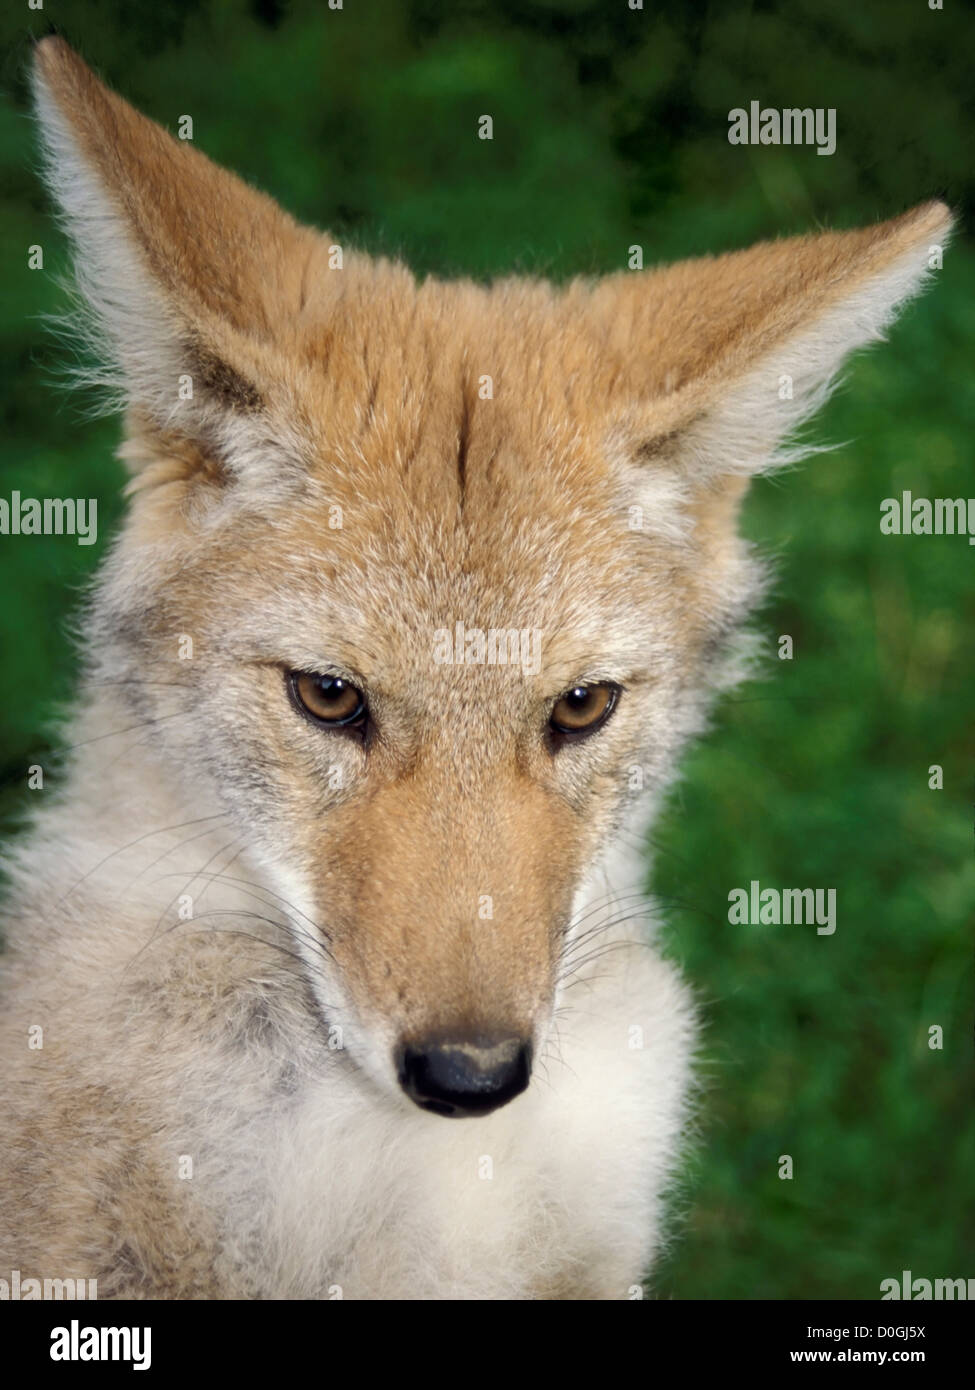 Coyote in the Foothills of the Takshanuk Mountains - Stock Image